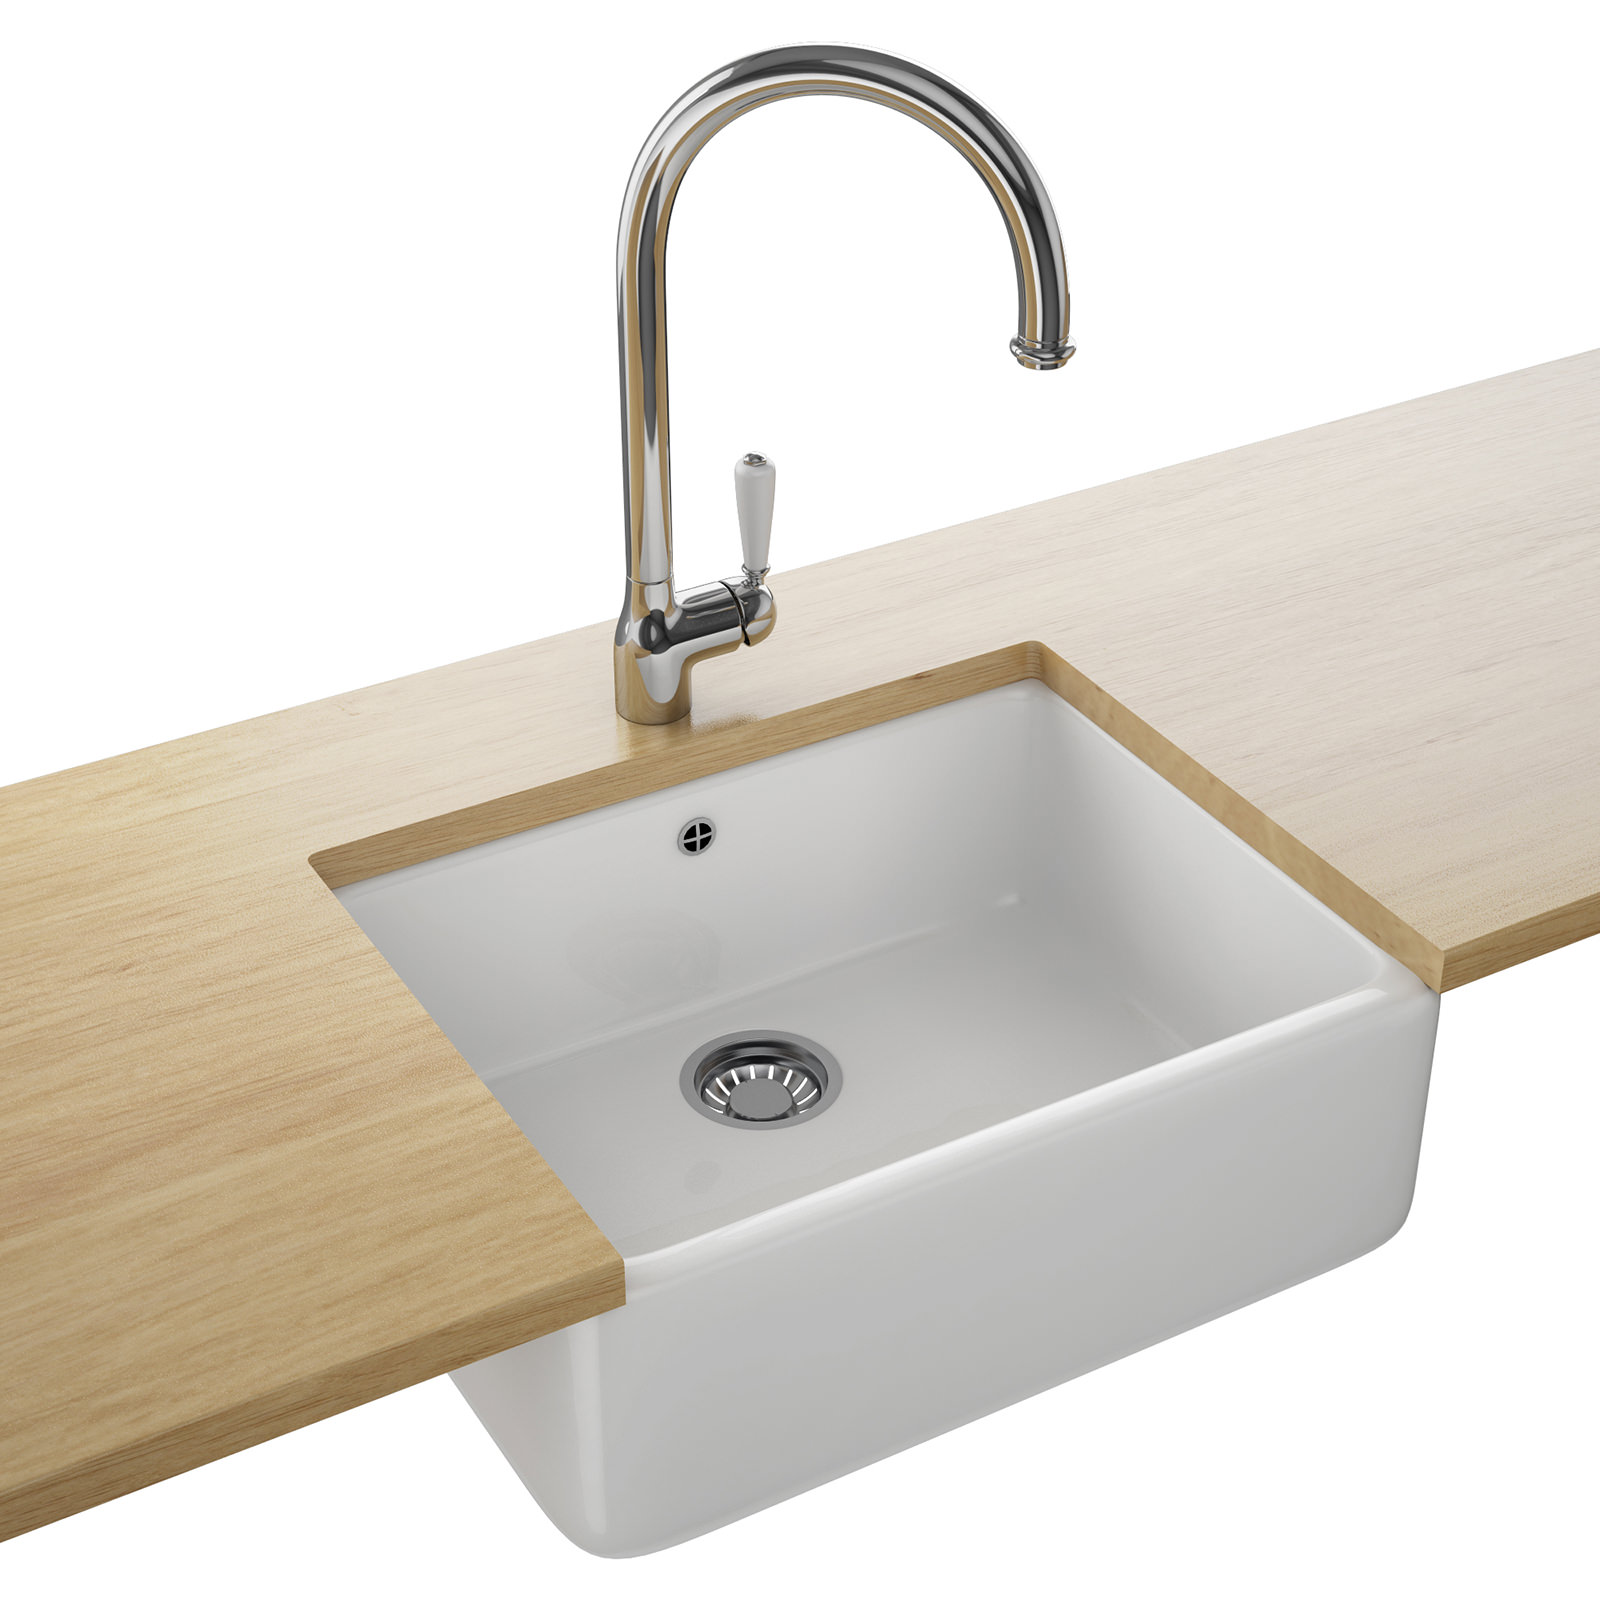 White Kitchen Taps: Franke Belfast Designer Pack VBK 710 Ceramic White Kitchen